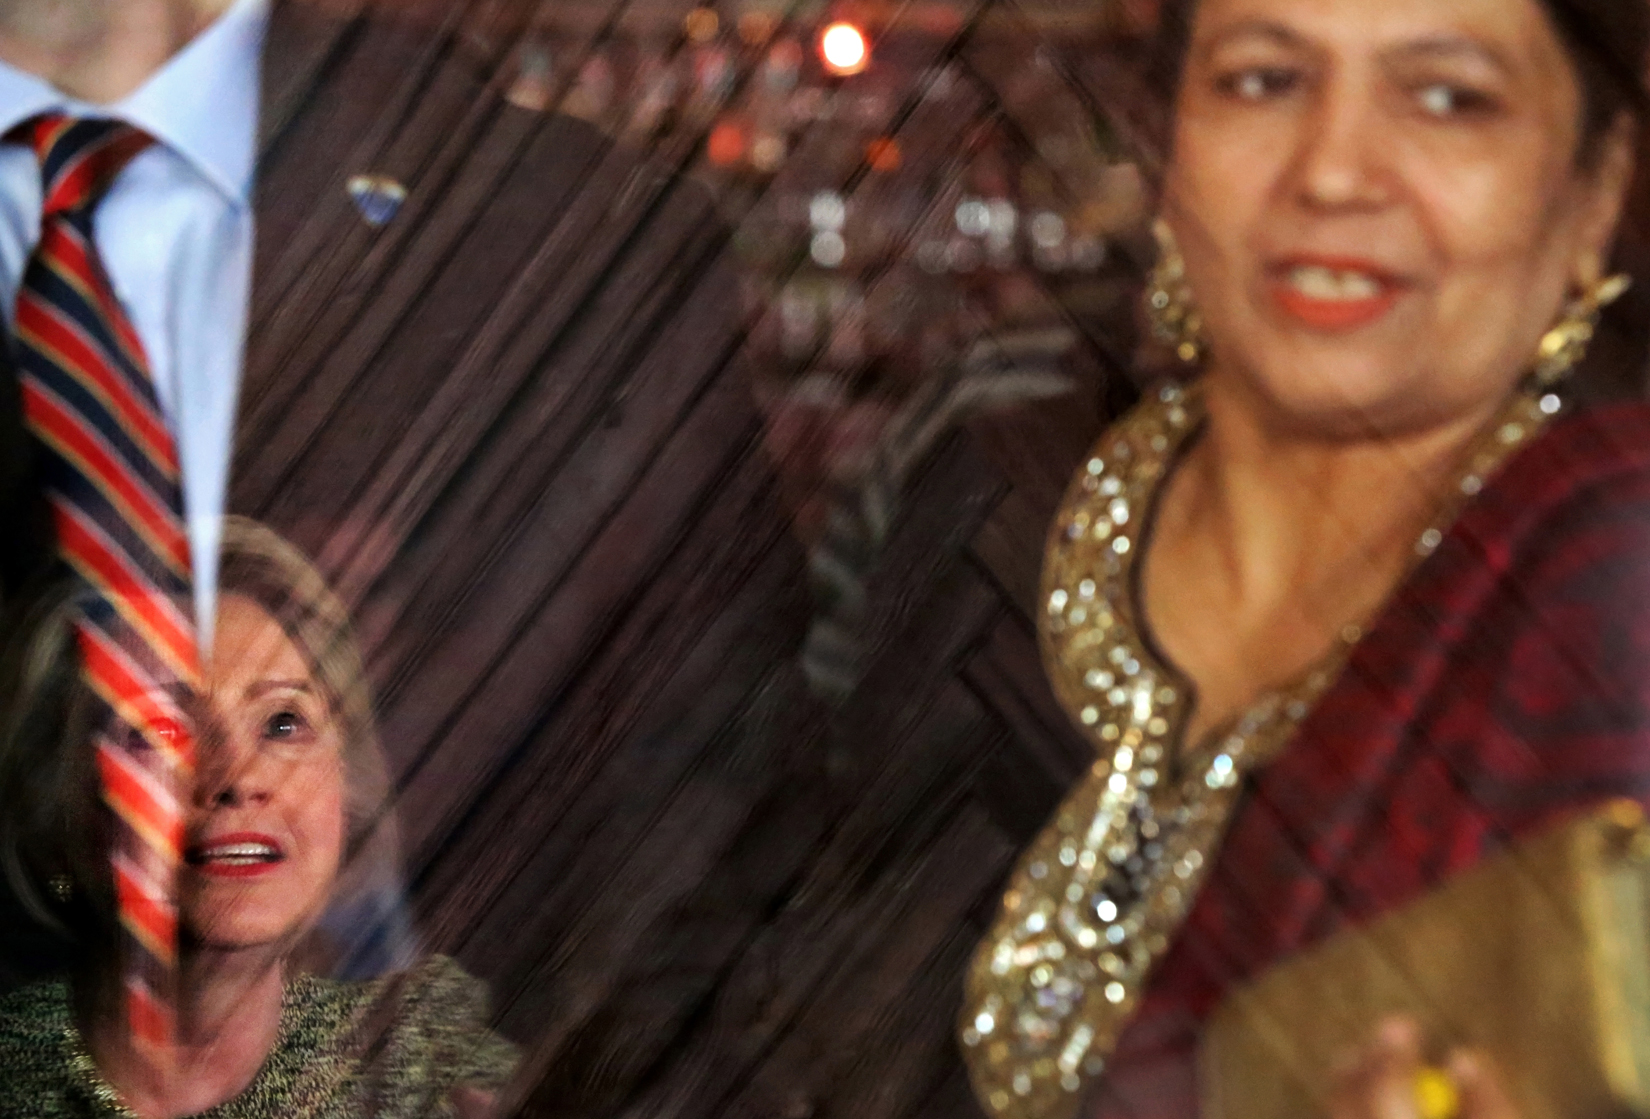 U.S. Presidential candidate Hillary Clinton (D-NY),) on left, speaks at Jackson Diner in Queens, NY, on April 11, 2016. Clinton is seen in the restaurant door's reflection. (For Washington Post)